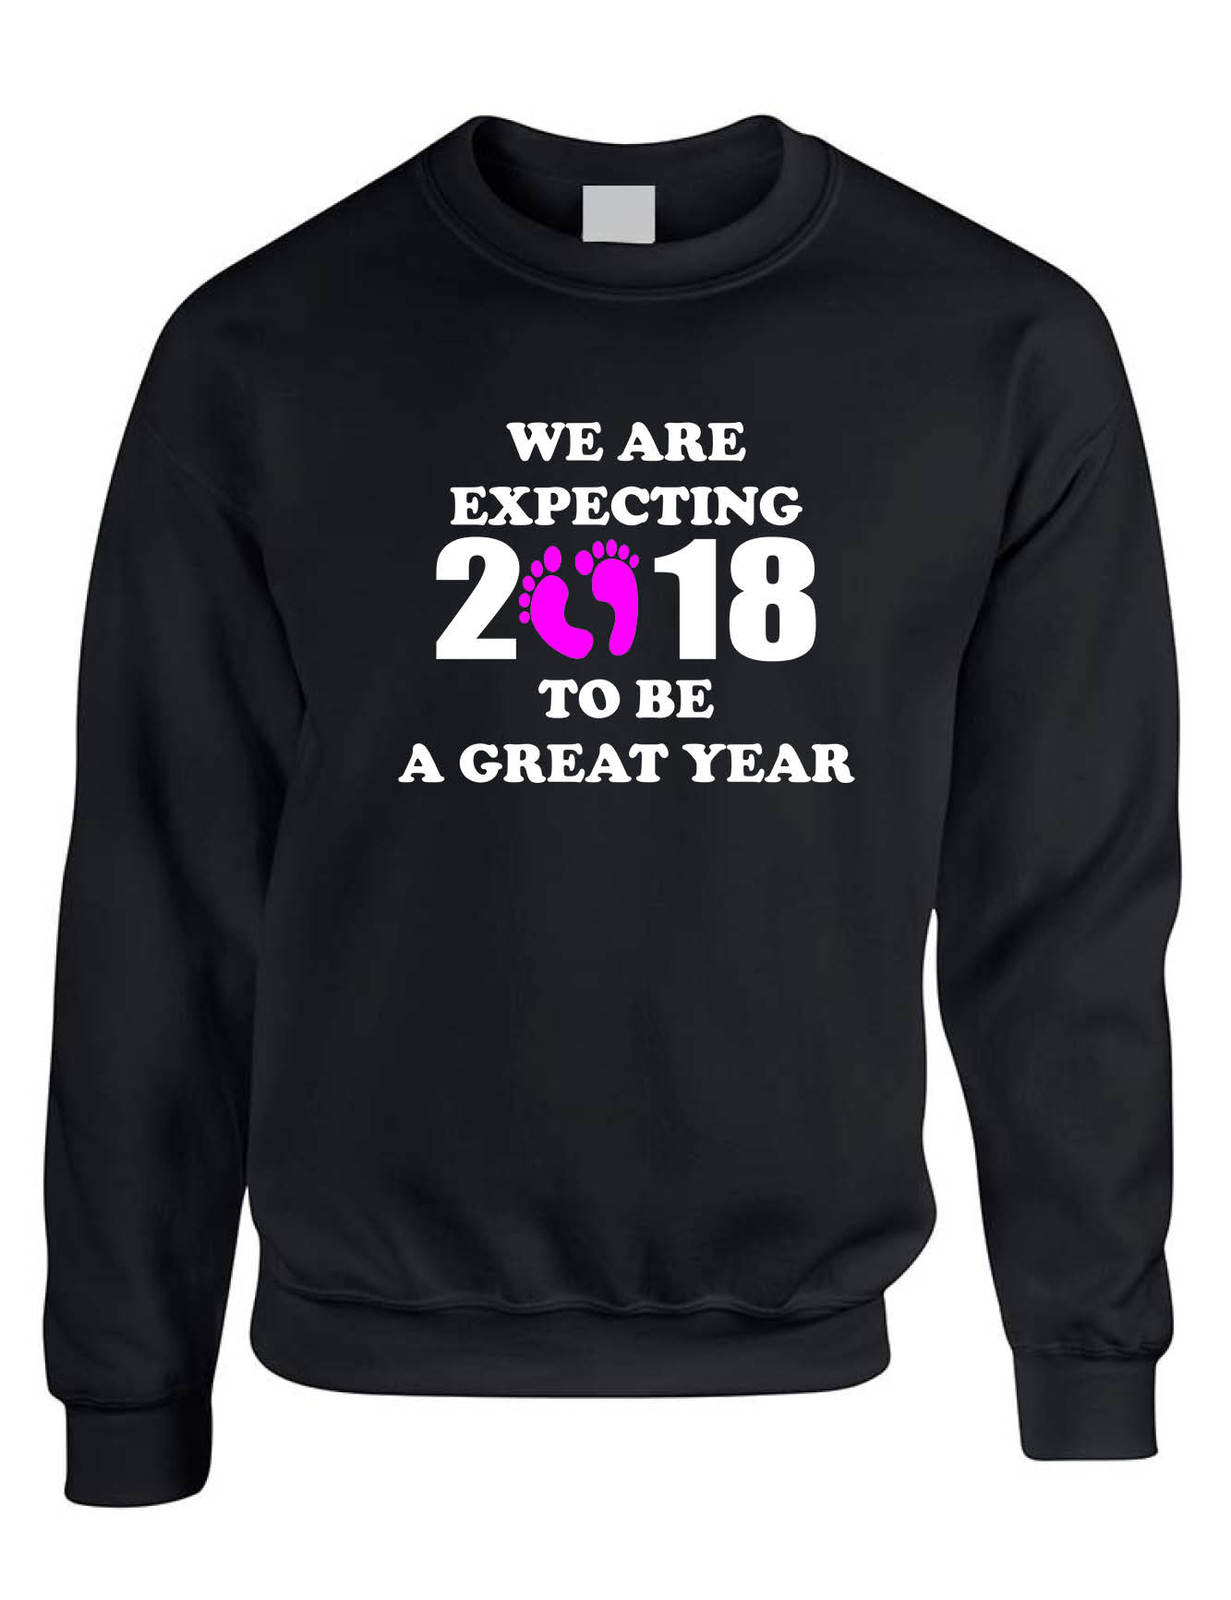 Primary image for Adult Sweatshirt We Are Expecting Girl Maternity Reveal 2018 To Be